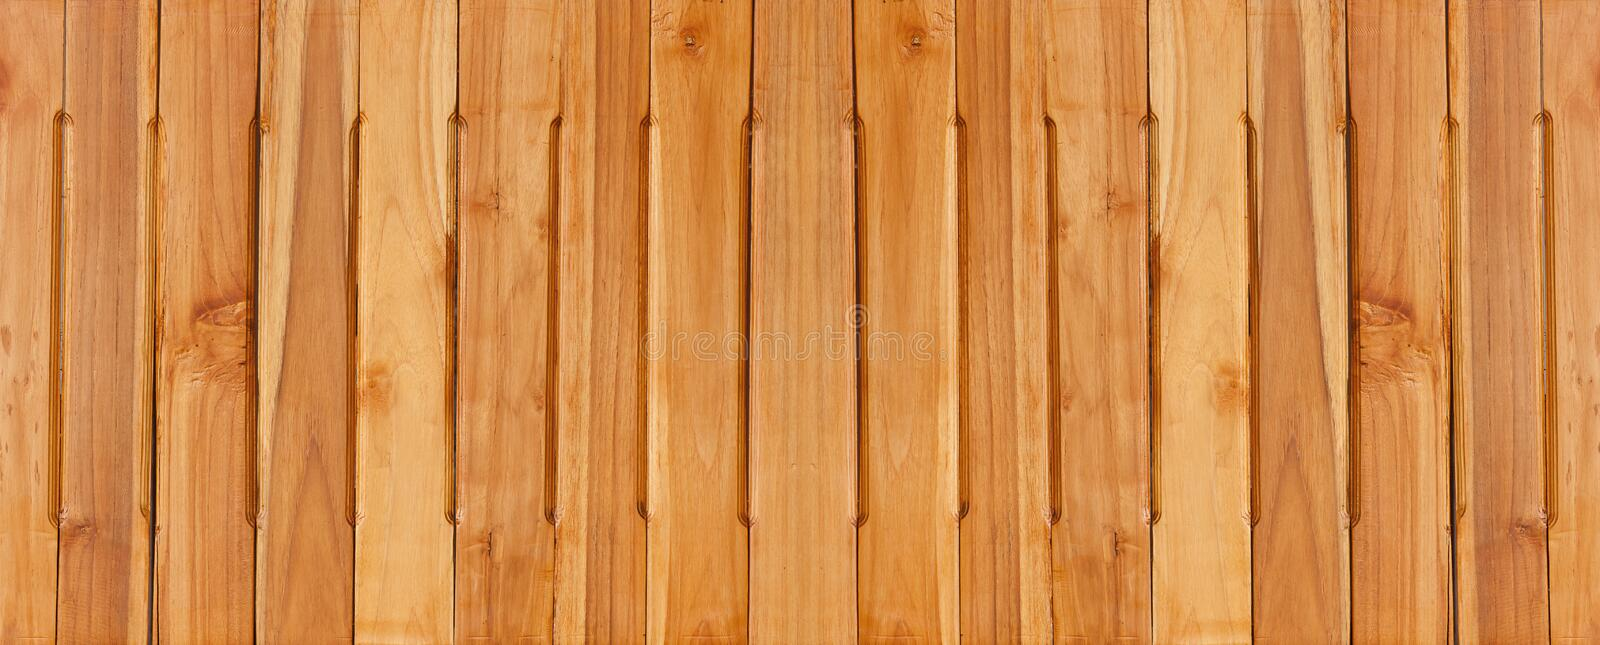 Download Wood background stock photo. Image of panel, material - 32339970